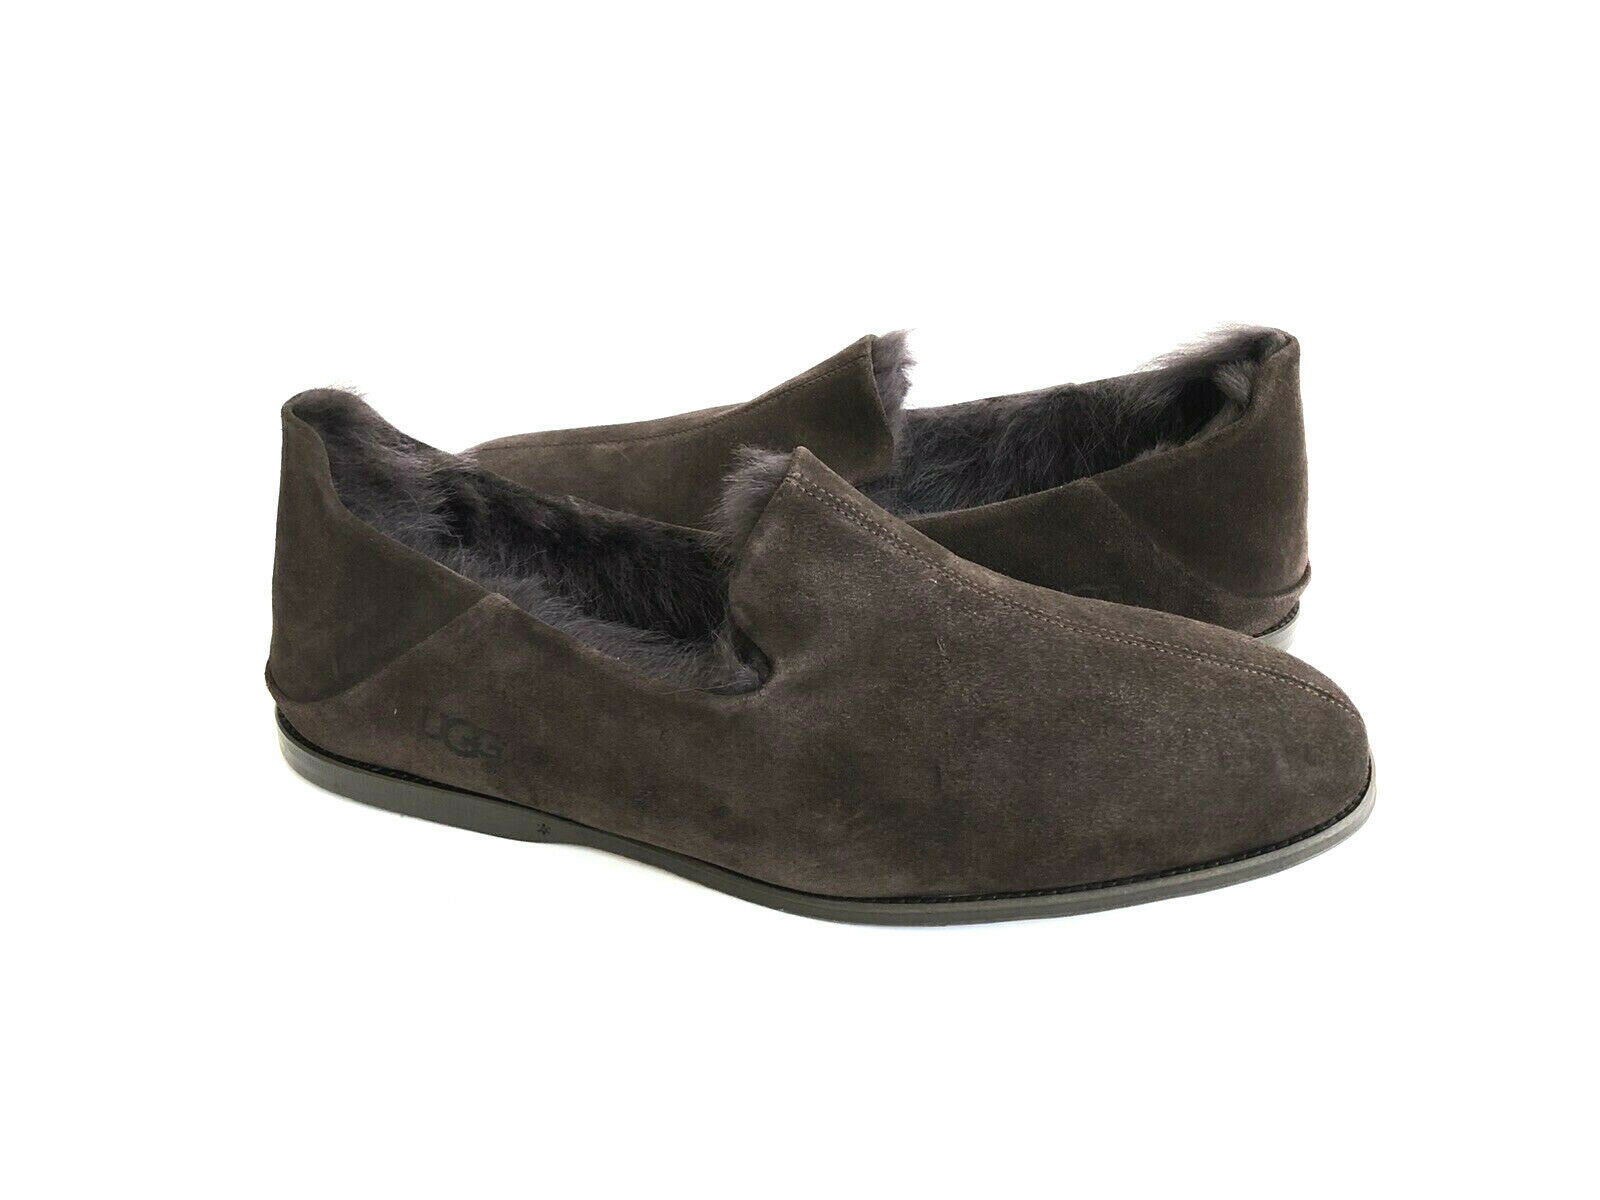 Primary image for UGG WOMEN CHATEAU STOUT SUEDE TOSCANA FUR SLIP ON SHOE US 7 / EU 38 / UK 5